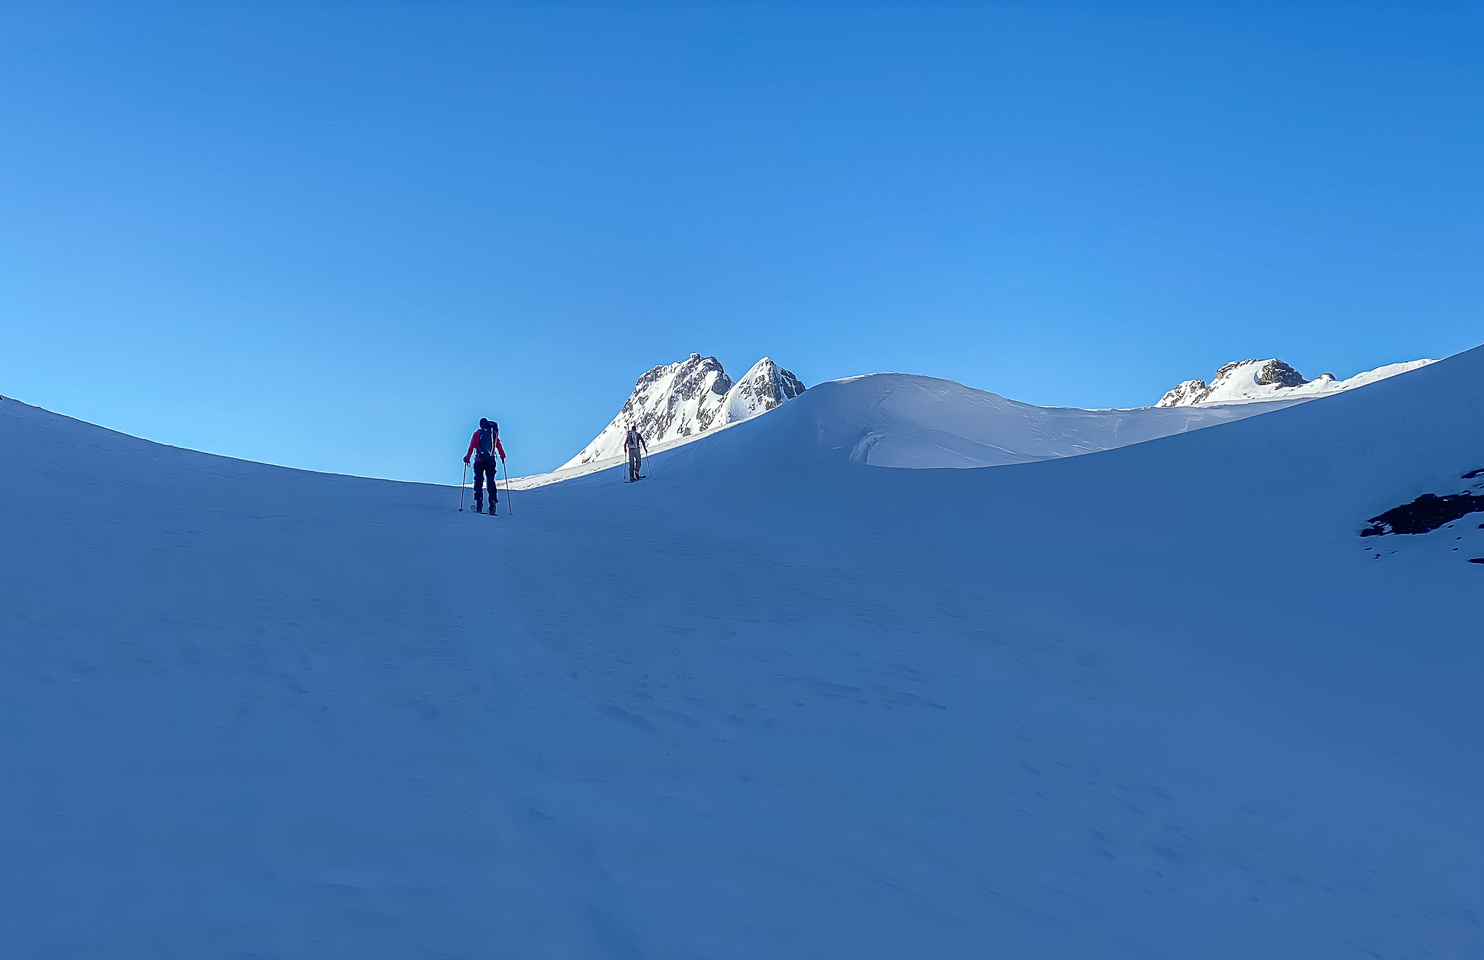 Skiing through the French Col onto the Haig Glacier.